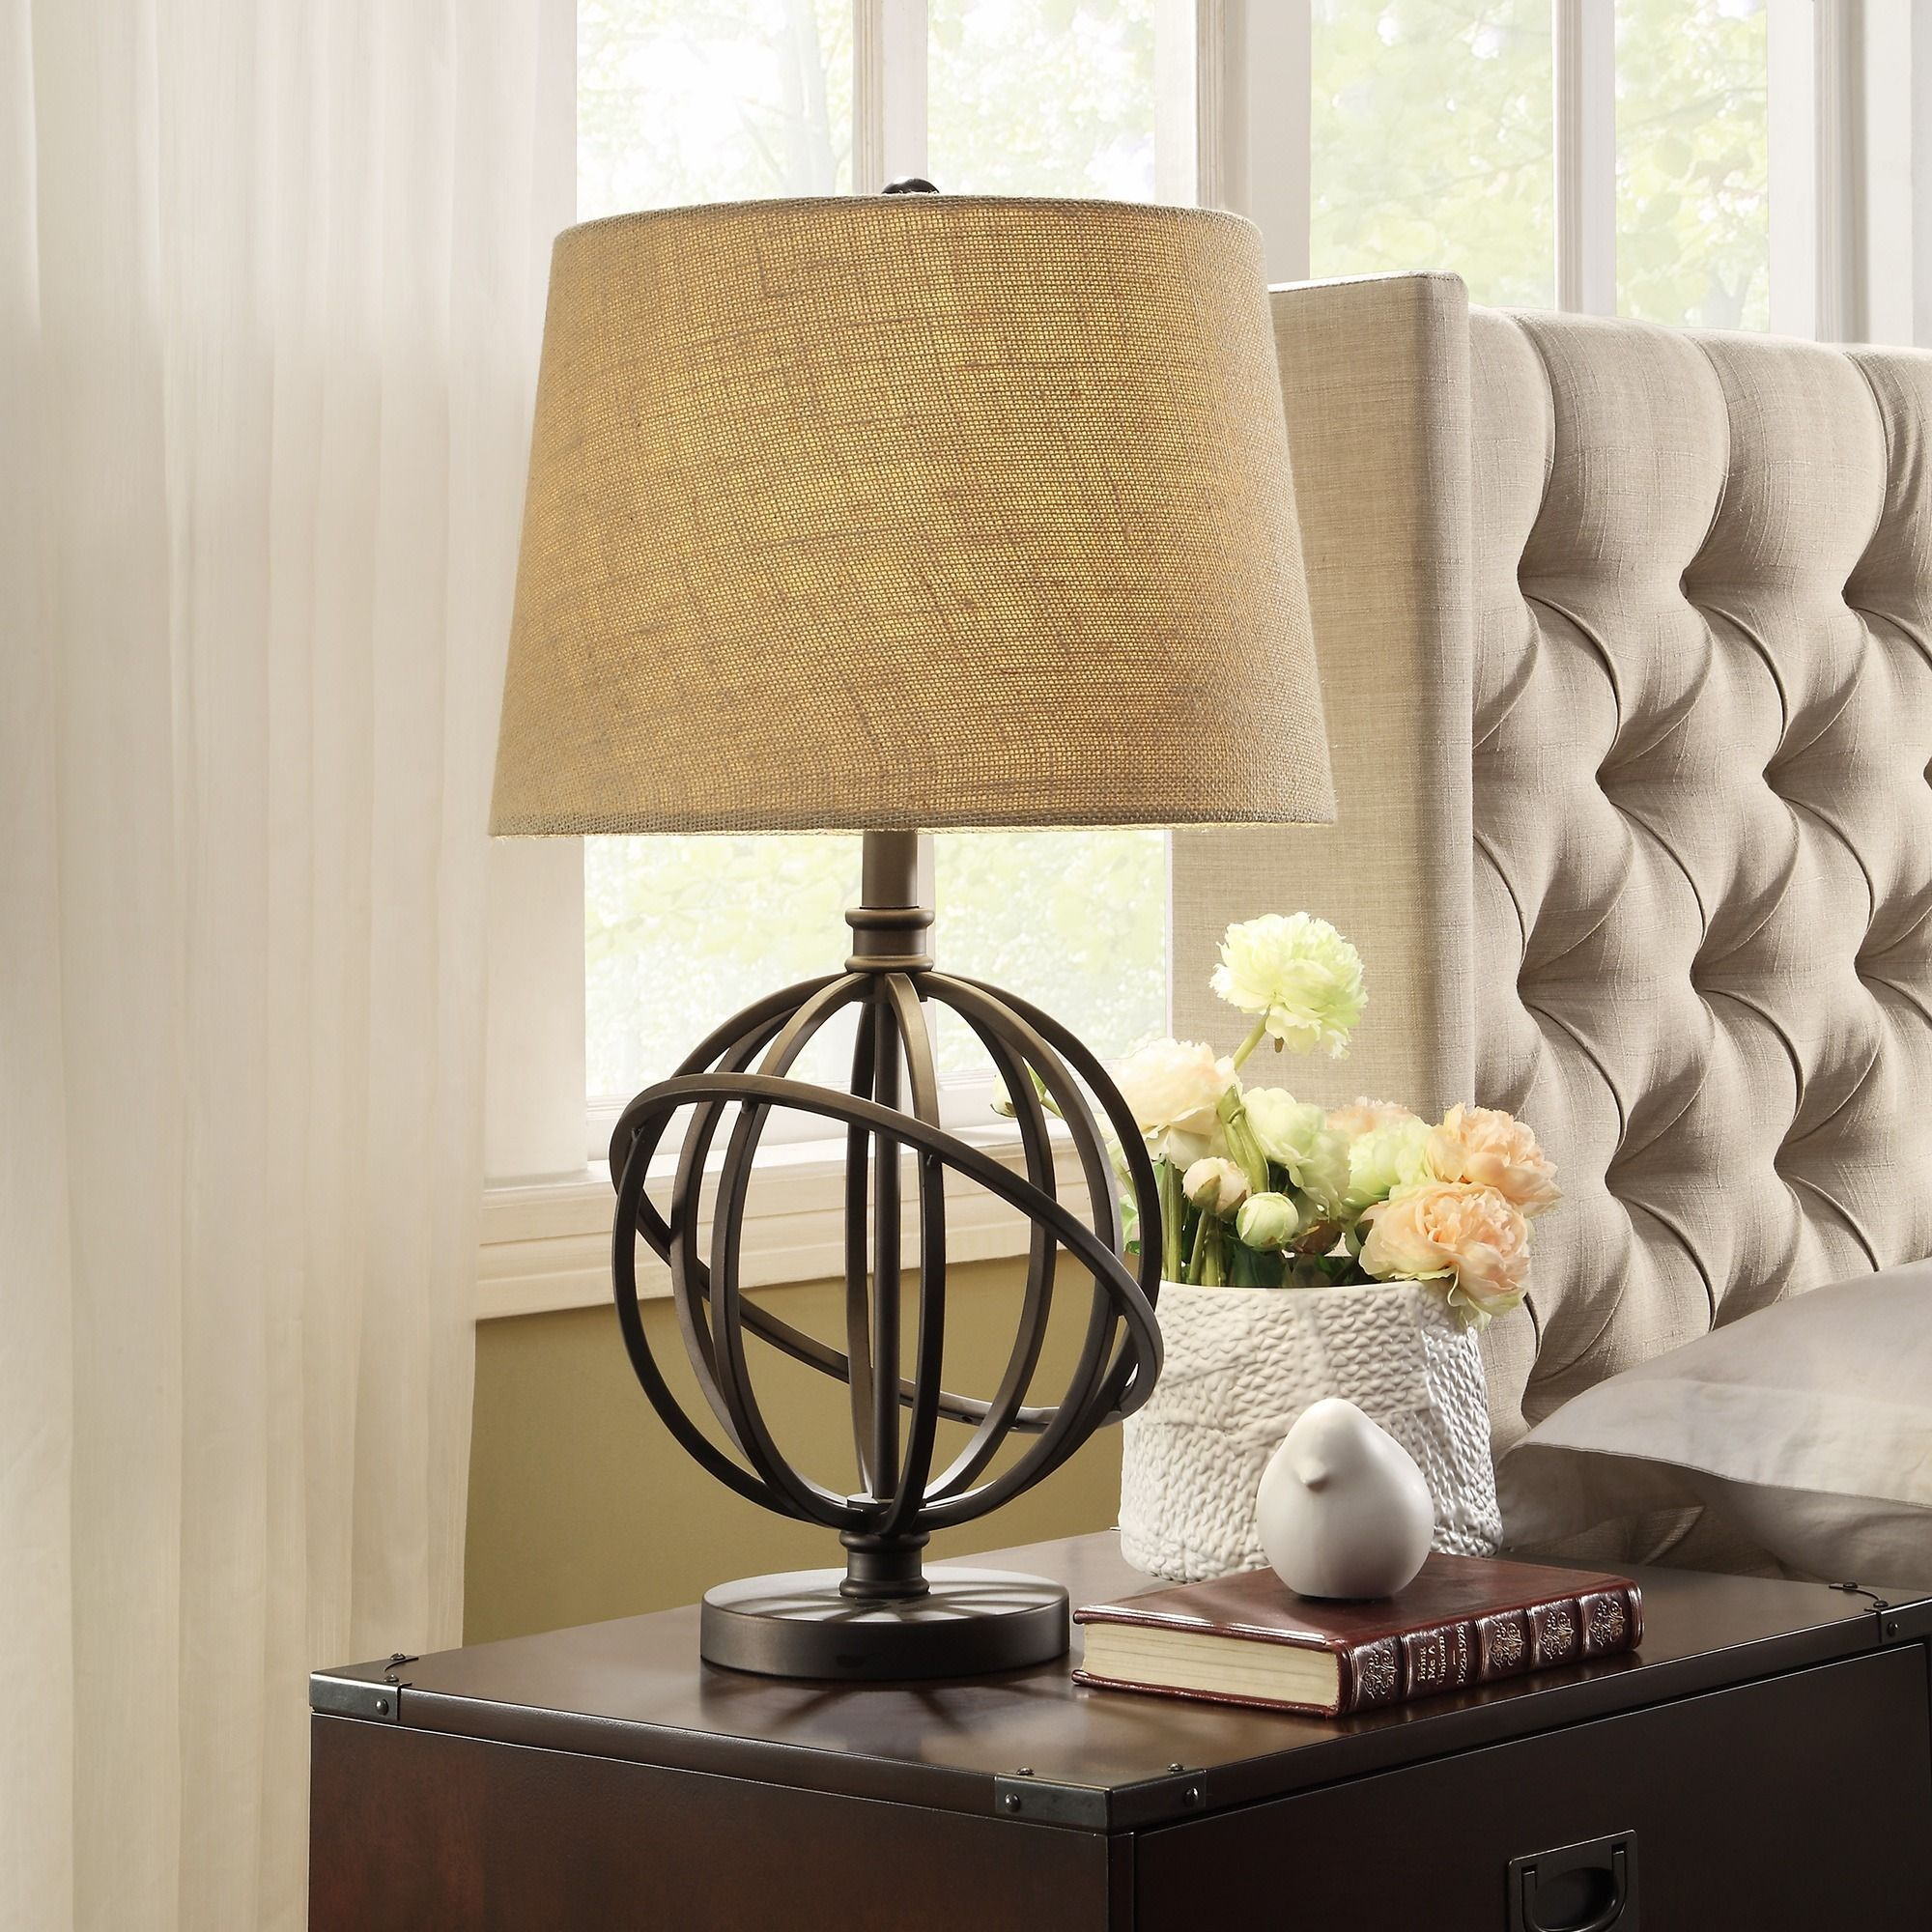 Cooper Antique Bronze Metal Orbit Globe 1-light Accent Table Lamp by  iNSPIRE Q Artisan by iNSPIRE Q